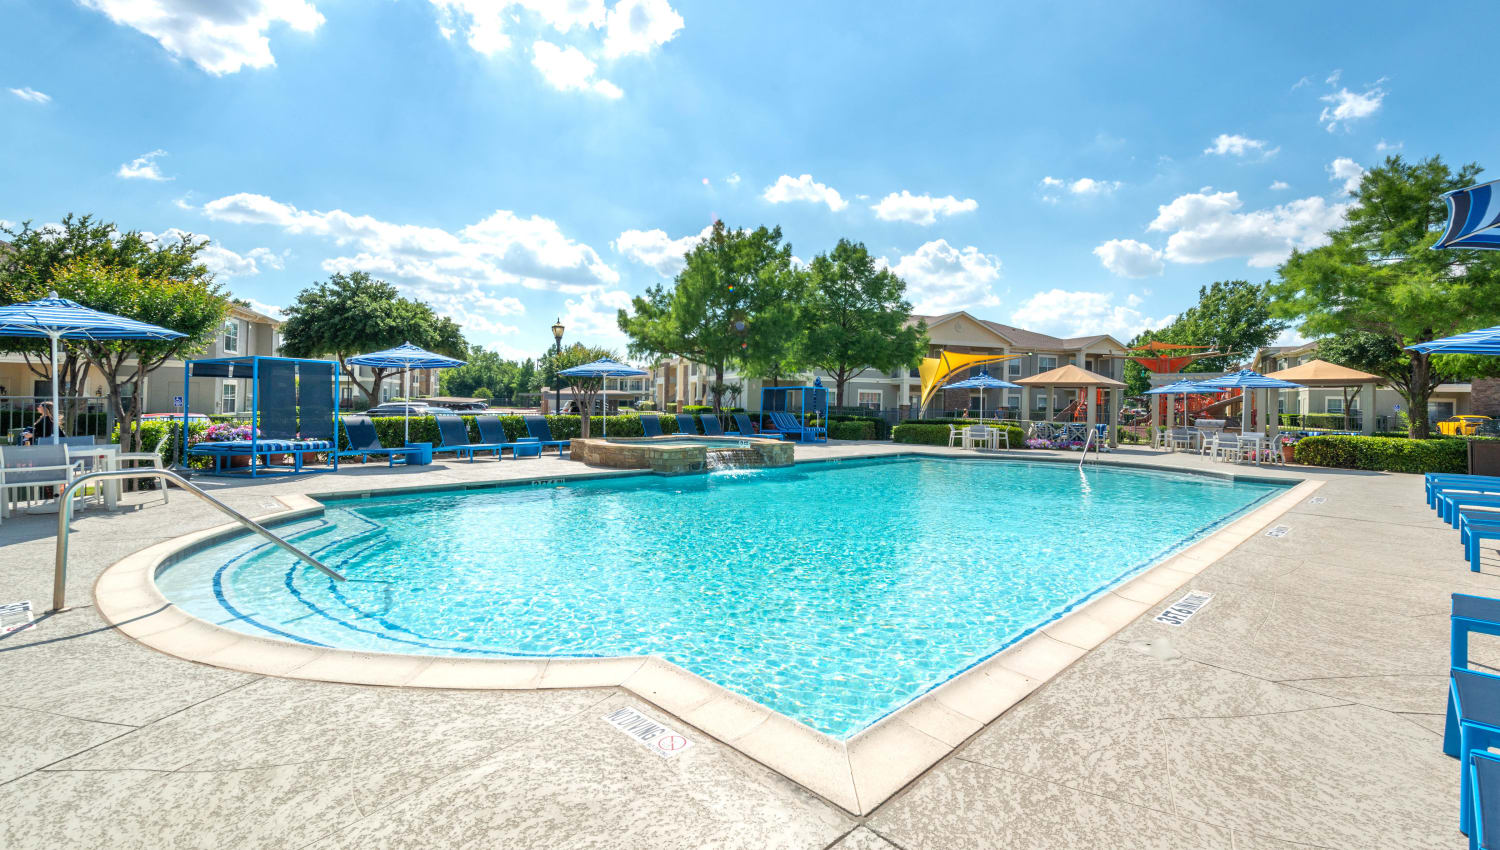 Resort-style swimming pool on a gorgeous day at Olympus Stone Glen in Keller, Texas